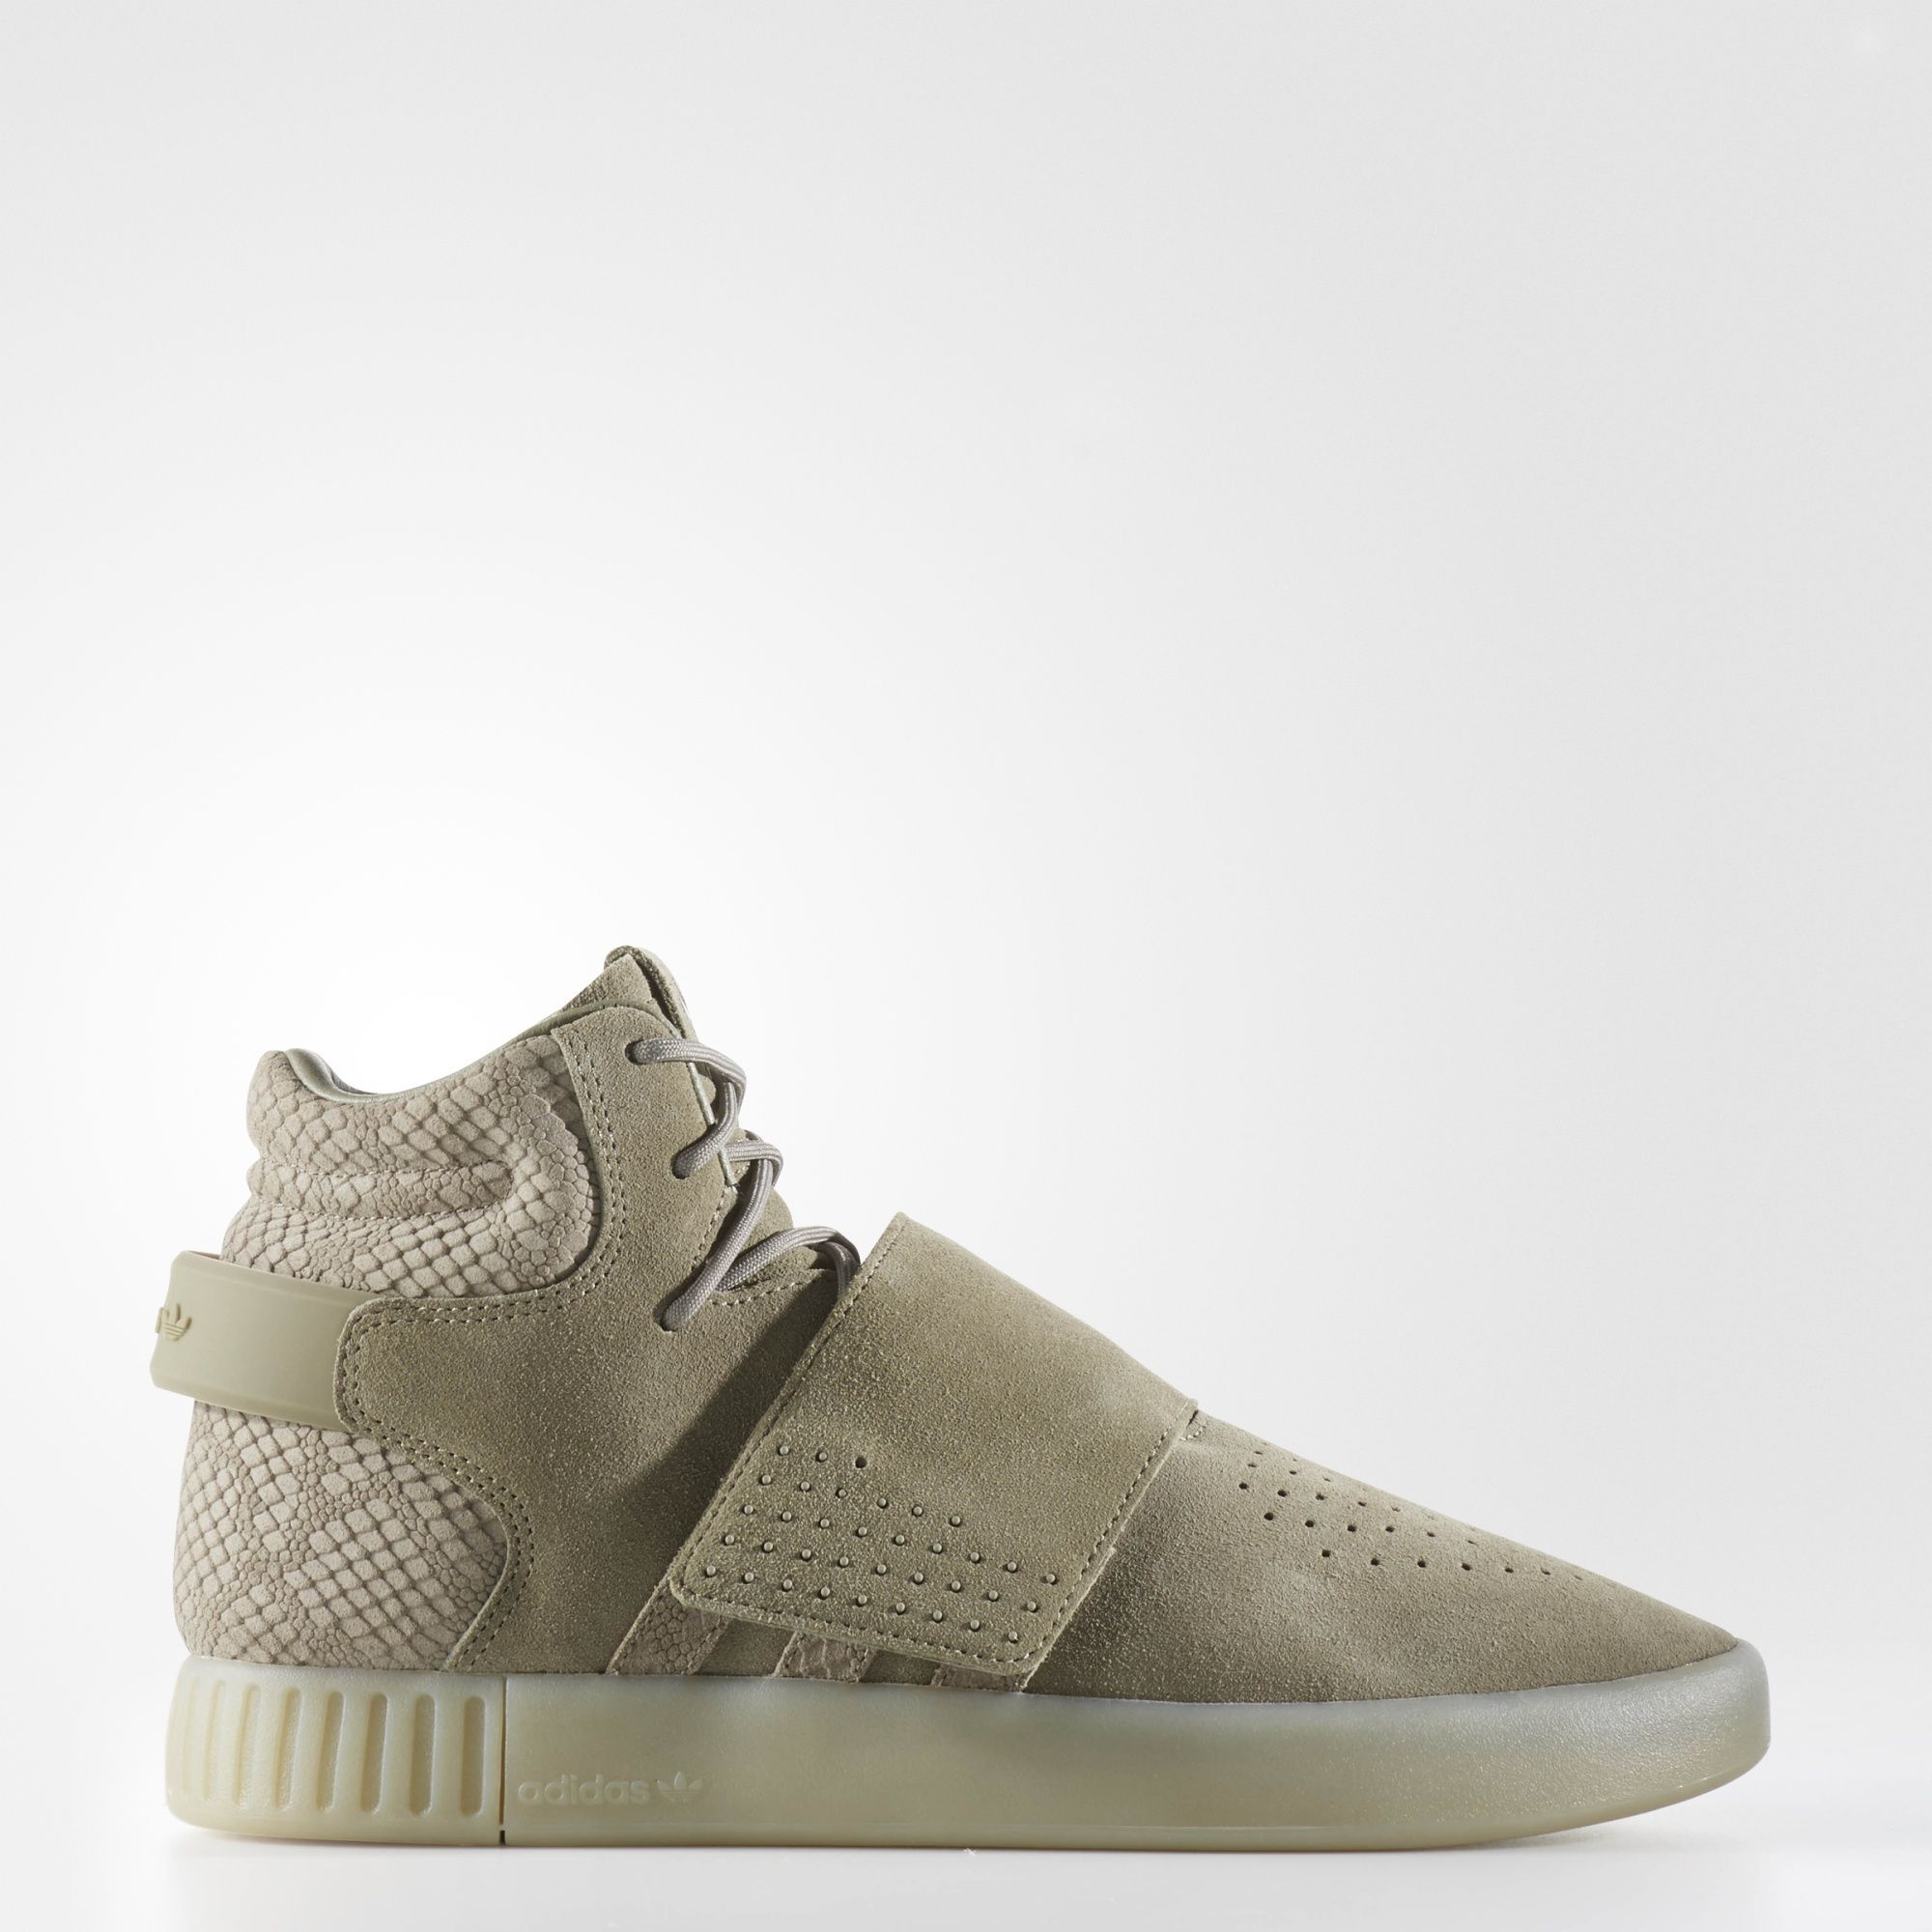 Shop for Tubular Invader Strap Shoes - Green at adidas. See all the styles  and colours of Tubular Invader Strap Shoes - Green at the official adidas  online ...